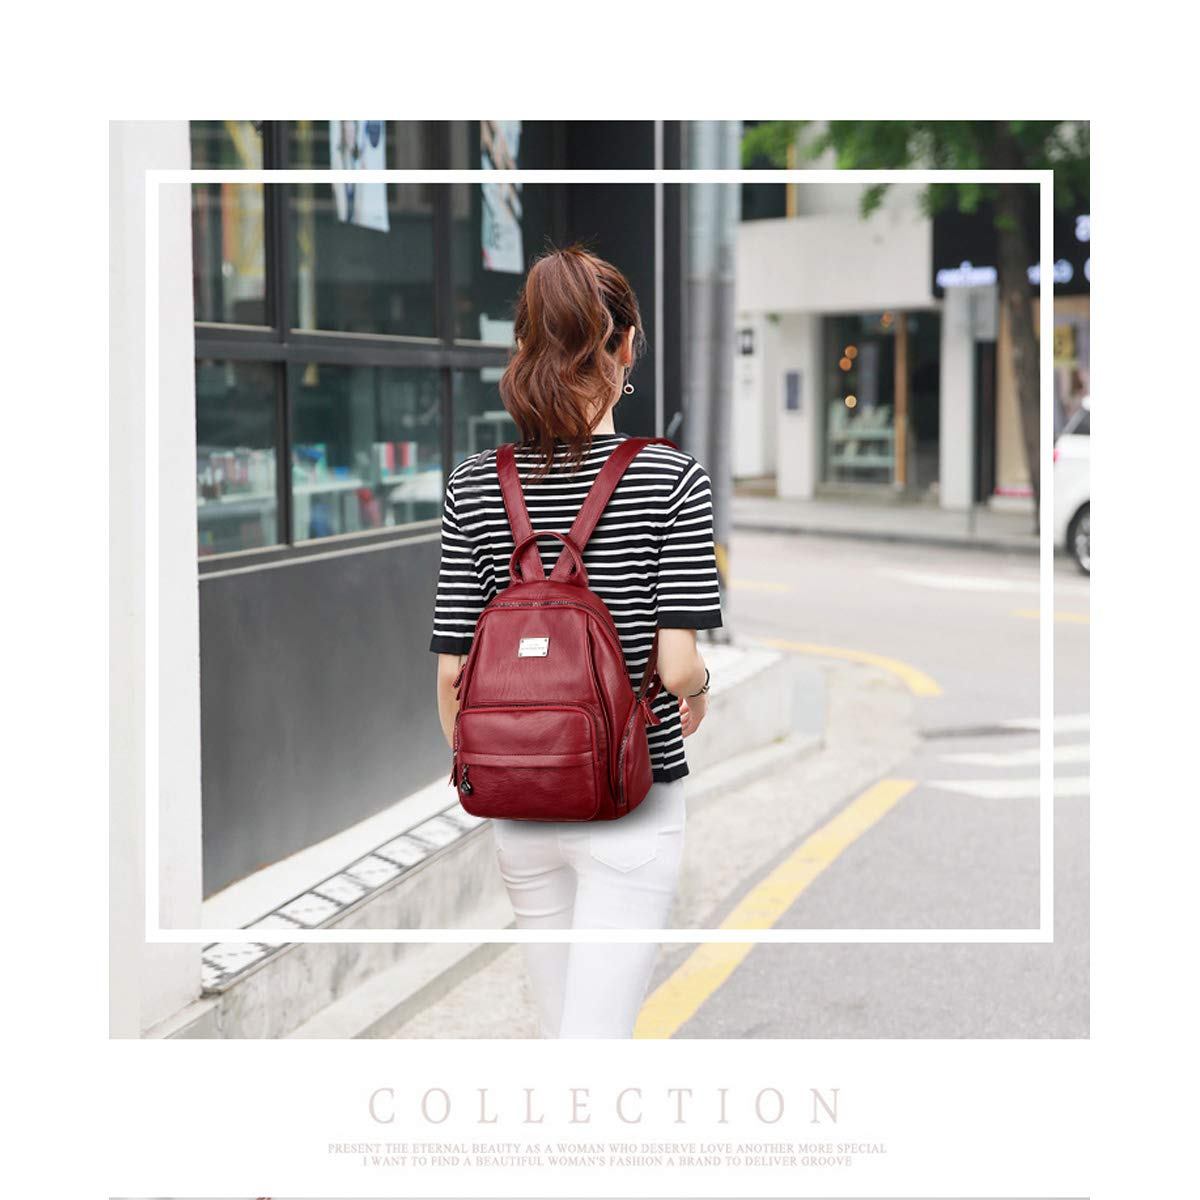 PU Leather Five Colors Sleek and Simple. Color : Black, Size : 30cm32cm14cm Haoyushangmao Girls Multi-Purpose Backpack for Daily Travel//Outdoor//Travel//School//Work//Fashion//Leisure